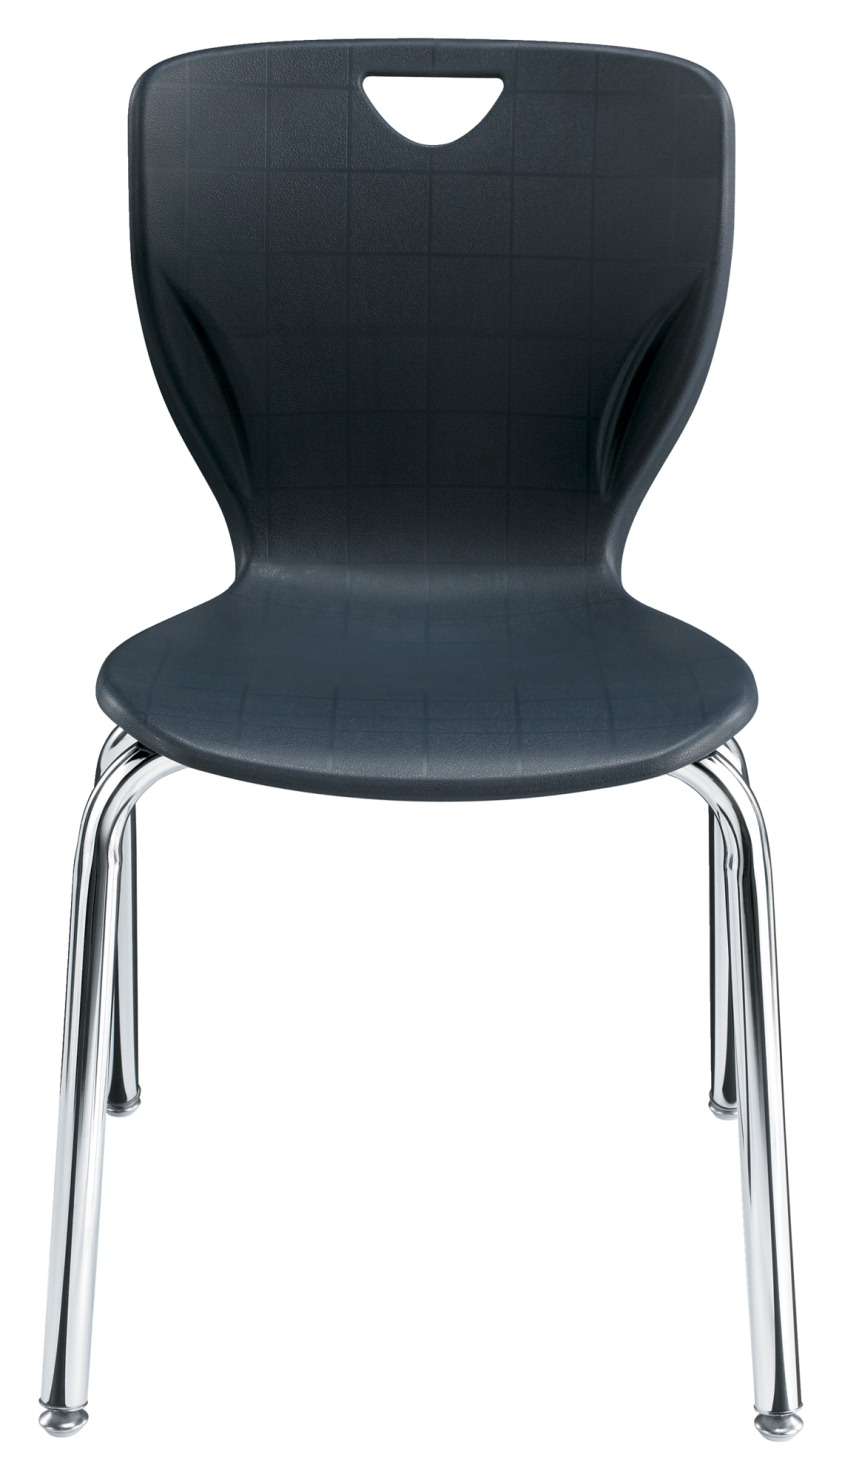 Classroom Select Contemporary Chair, 20 Inch A+ Seat Height, Chrome Frame, Various Options